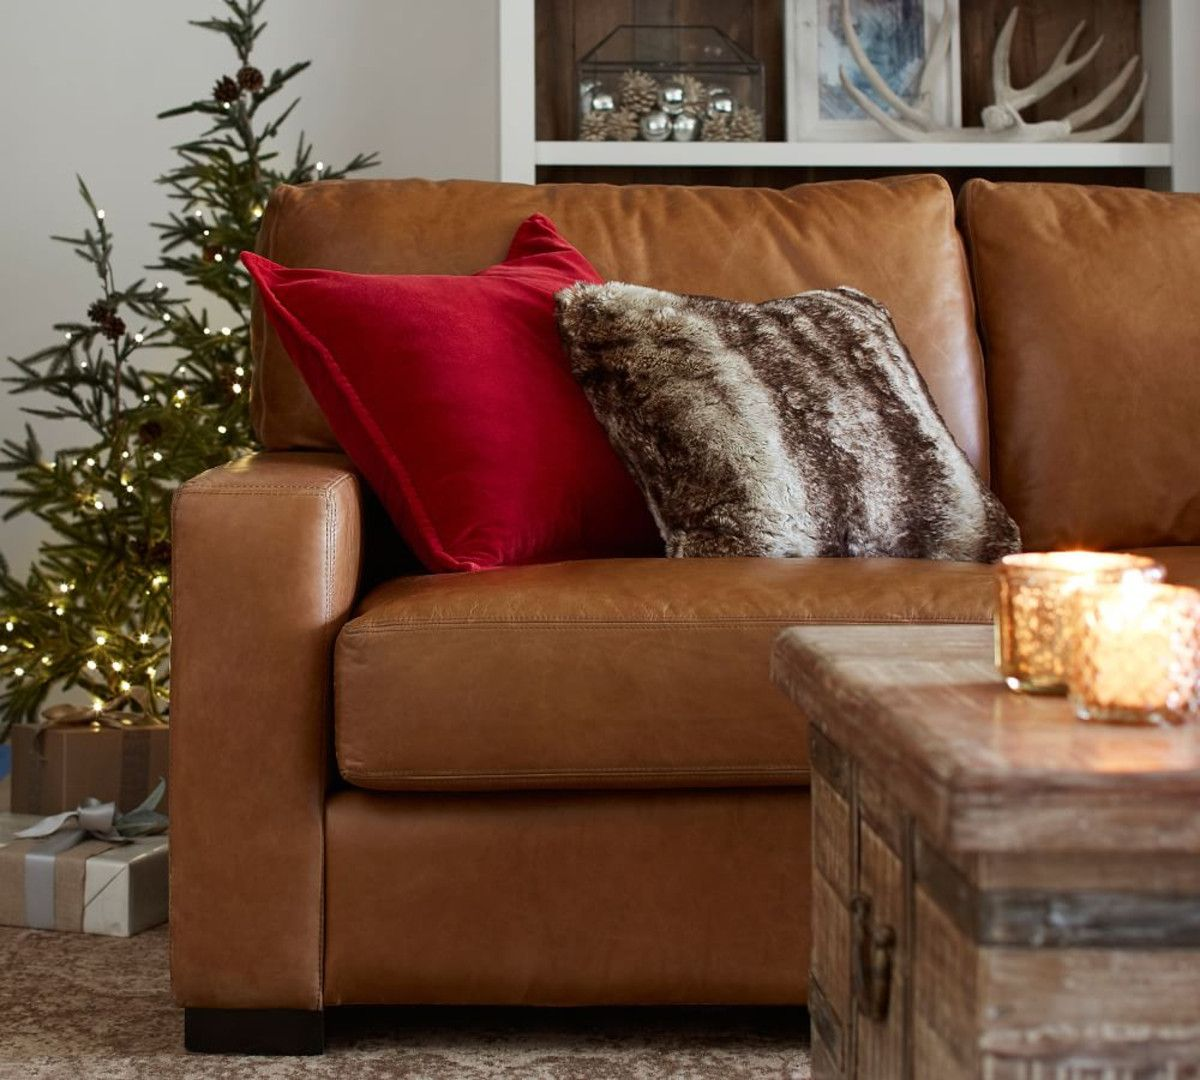 Washed Velvet Cushion Cover Leather sofa, Leather chaise